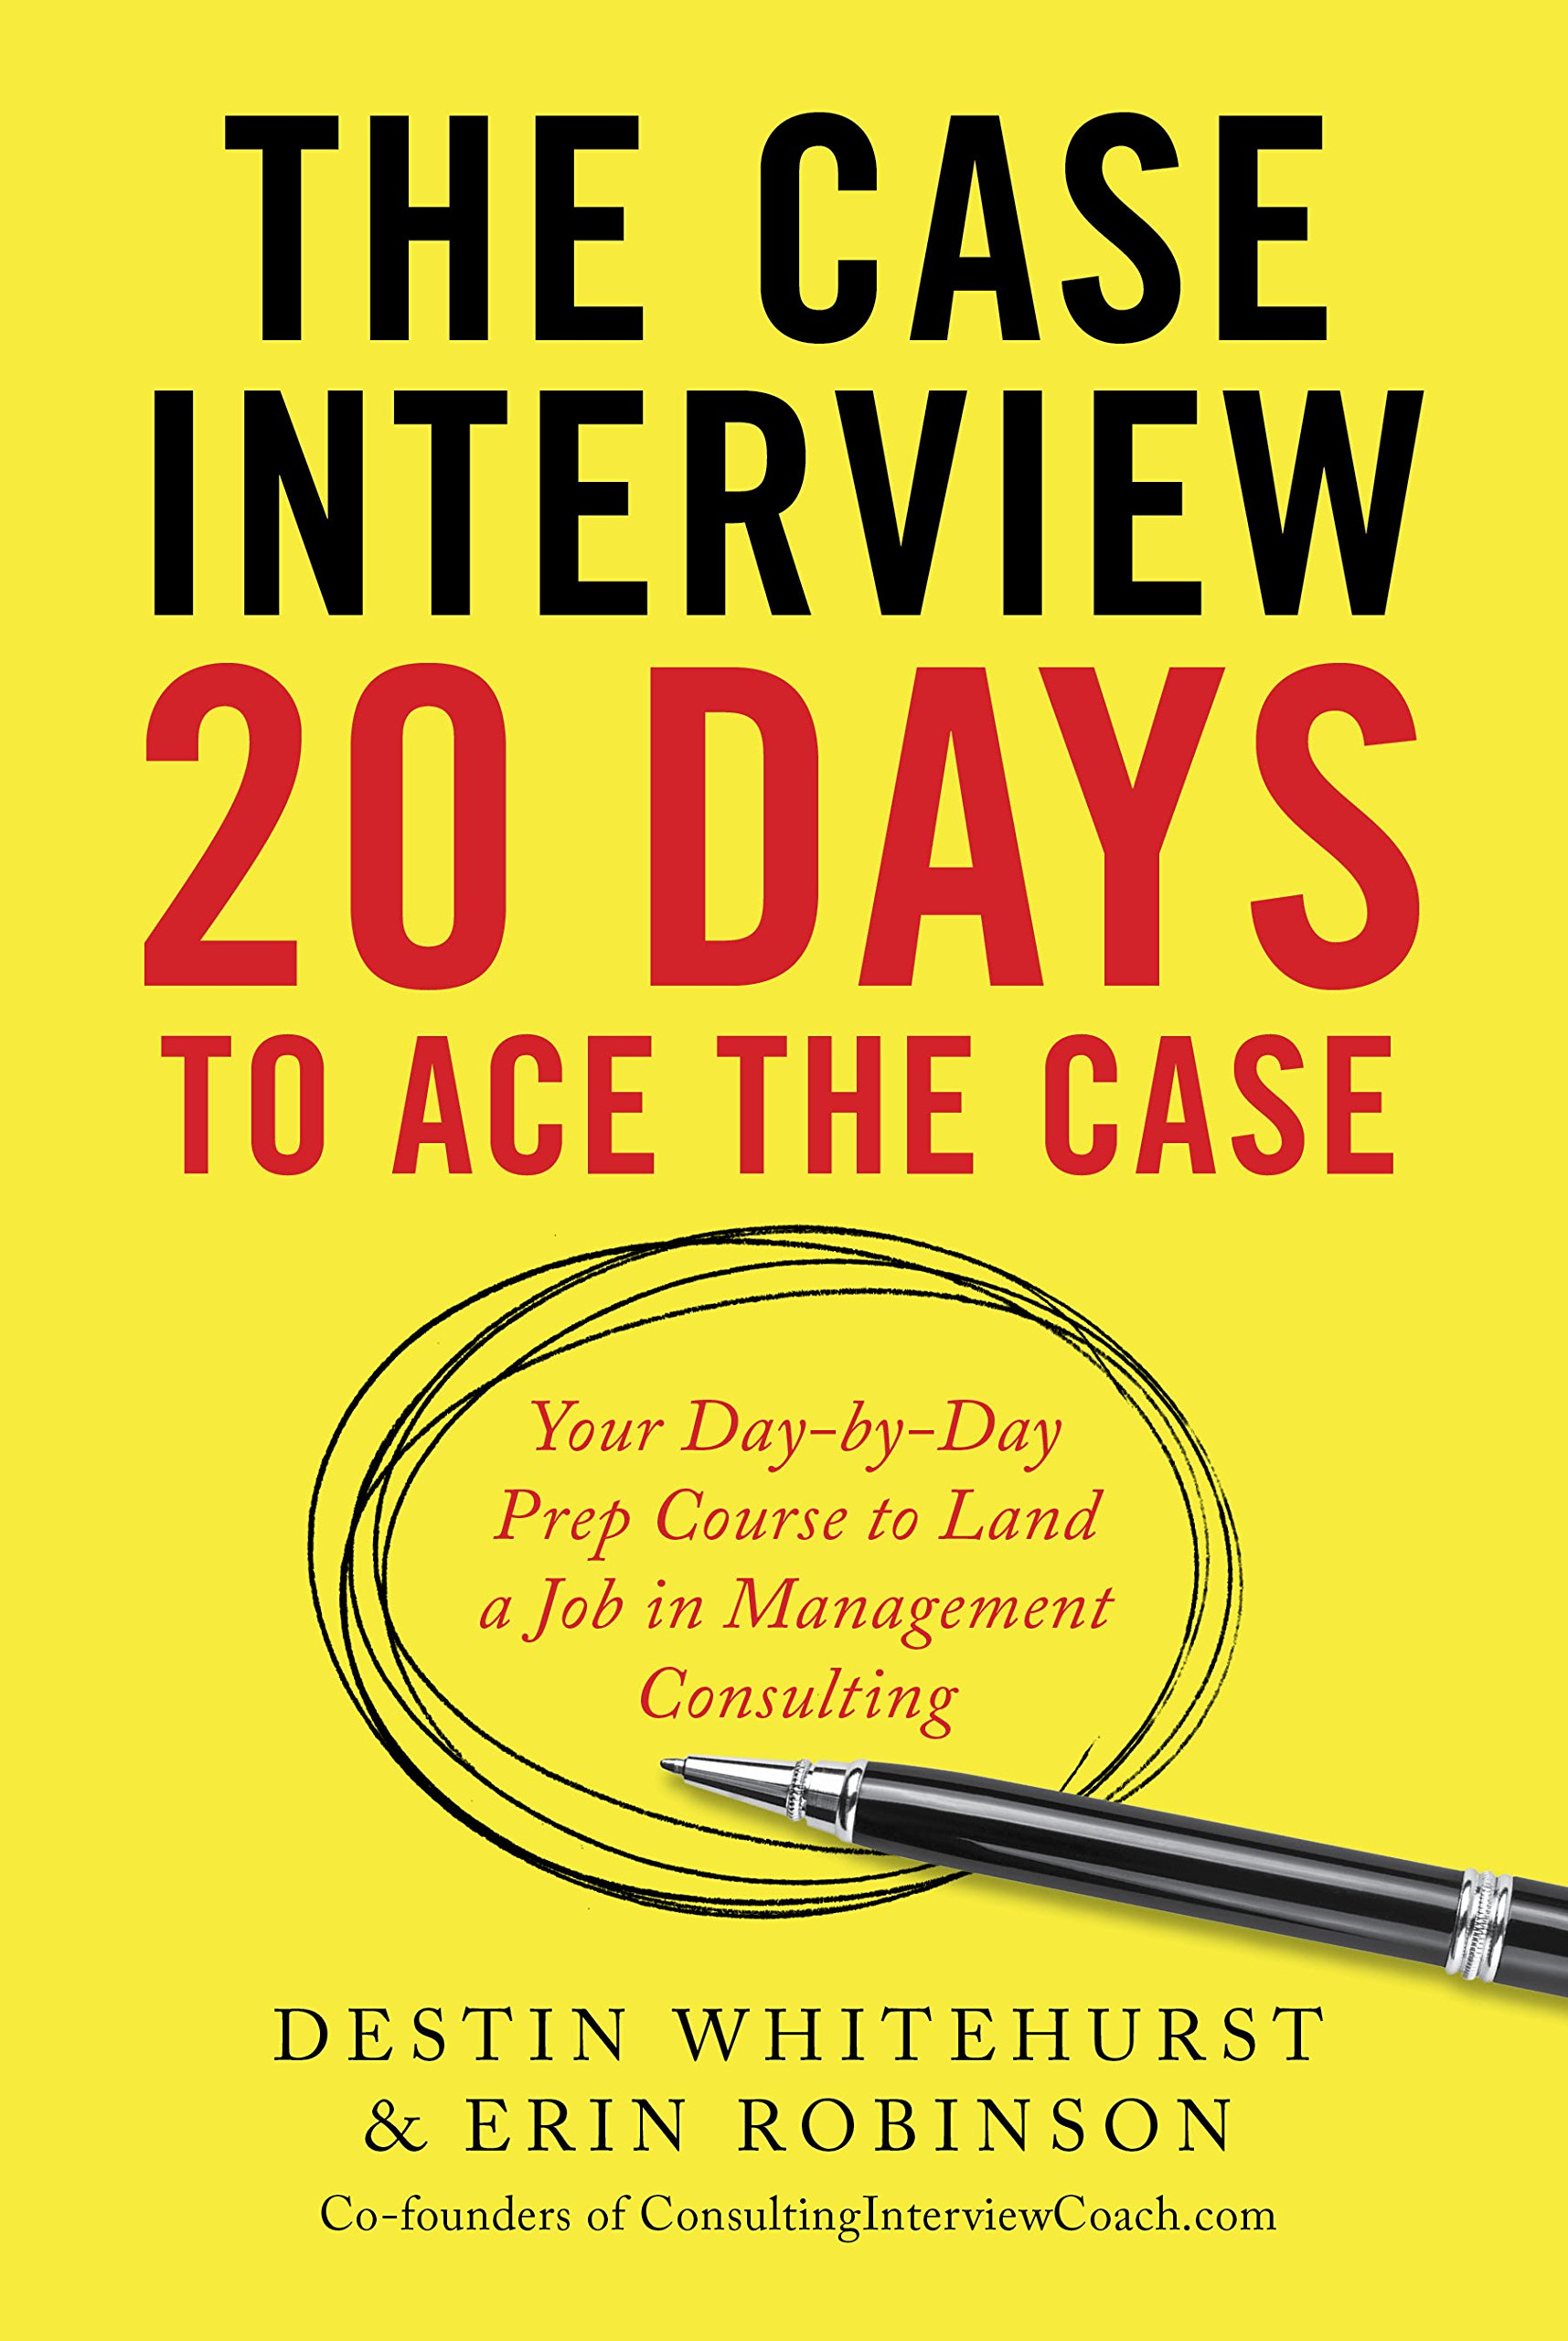 Case Interview: 20 Days to Ace the Case: Your Day-By-Day Prep Course to Land a Job in Management Consulting